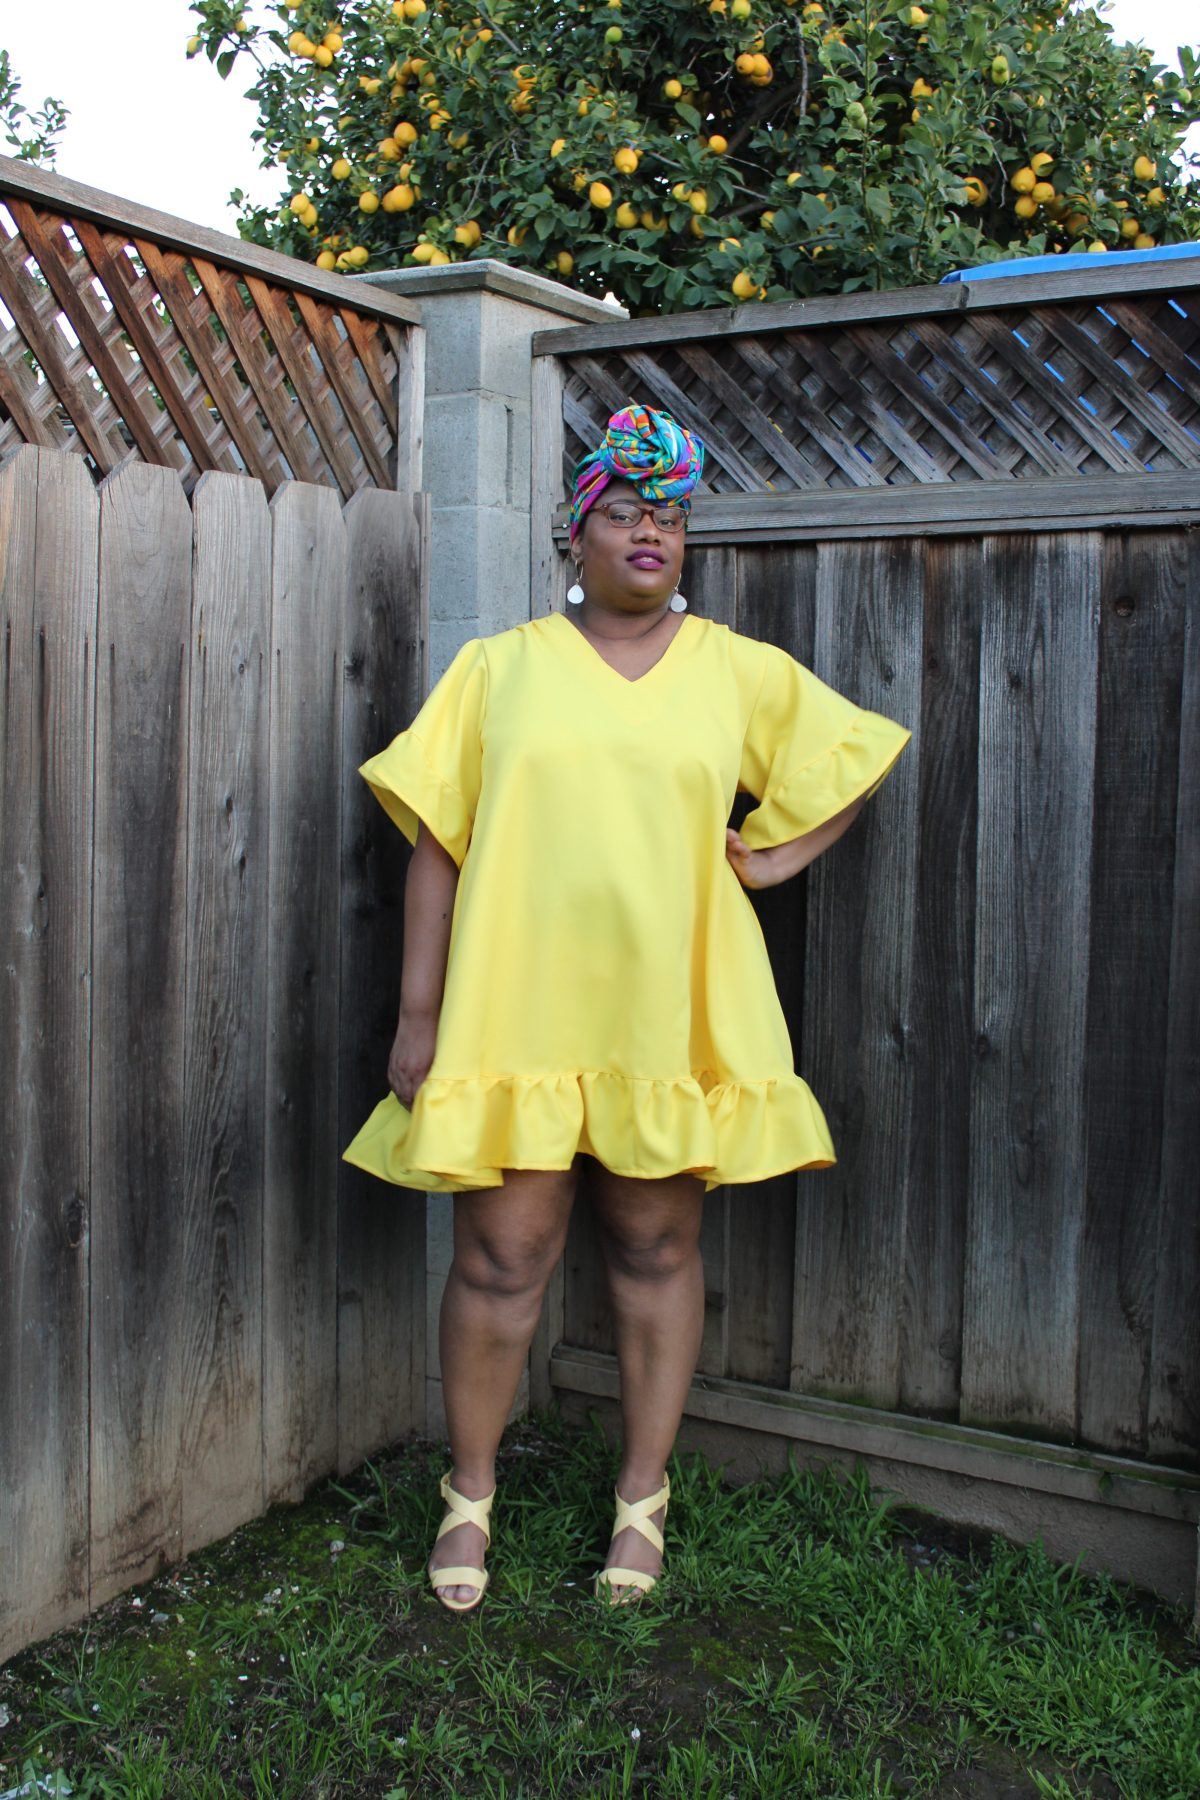 Image of a Black woman with a colorful head scarf. glasses, and dangling white earrings standing in front of a tall fence. Behind her, a lemon tree is heavy with lemons. She is wearing a bright mini A-line yellow dress and strappy yellow heels.